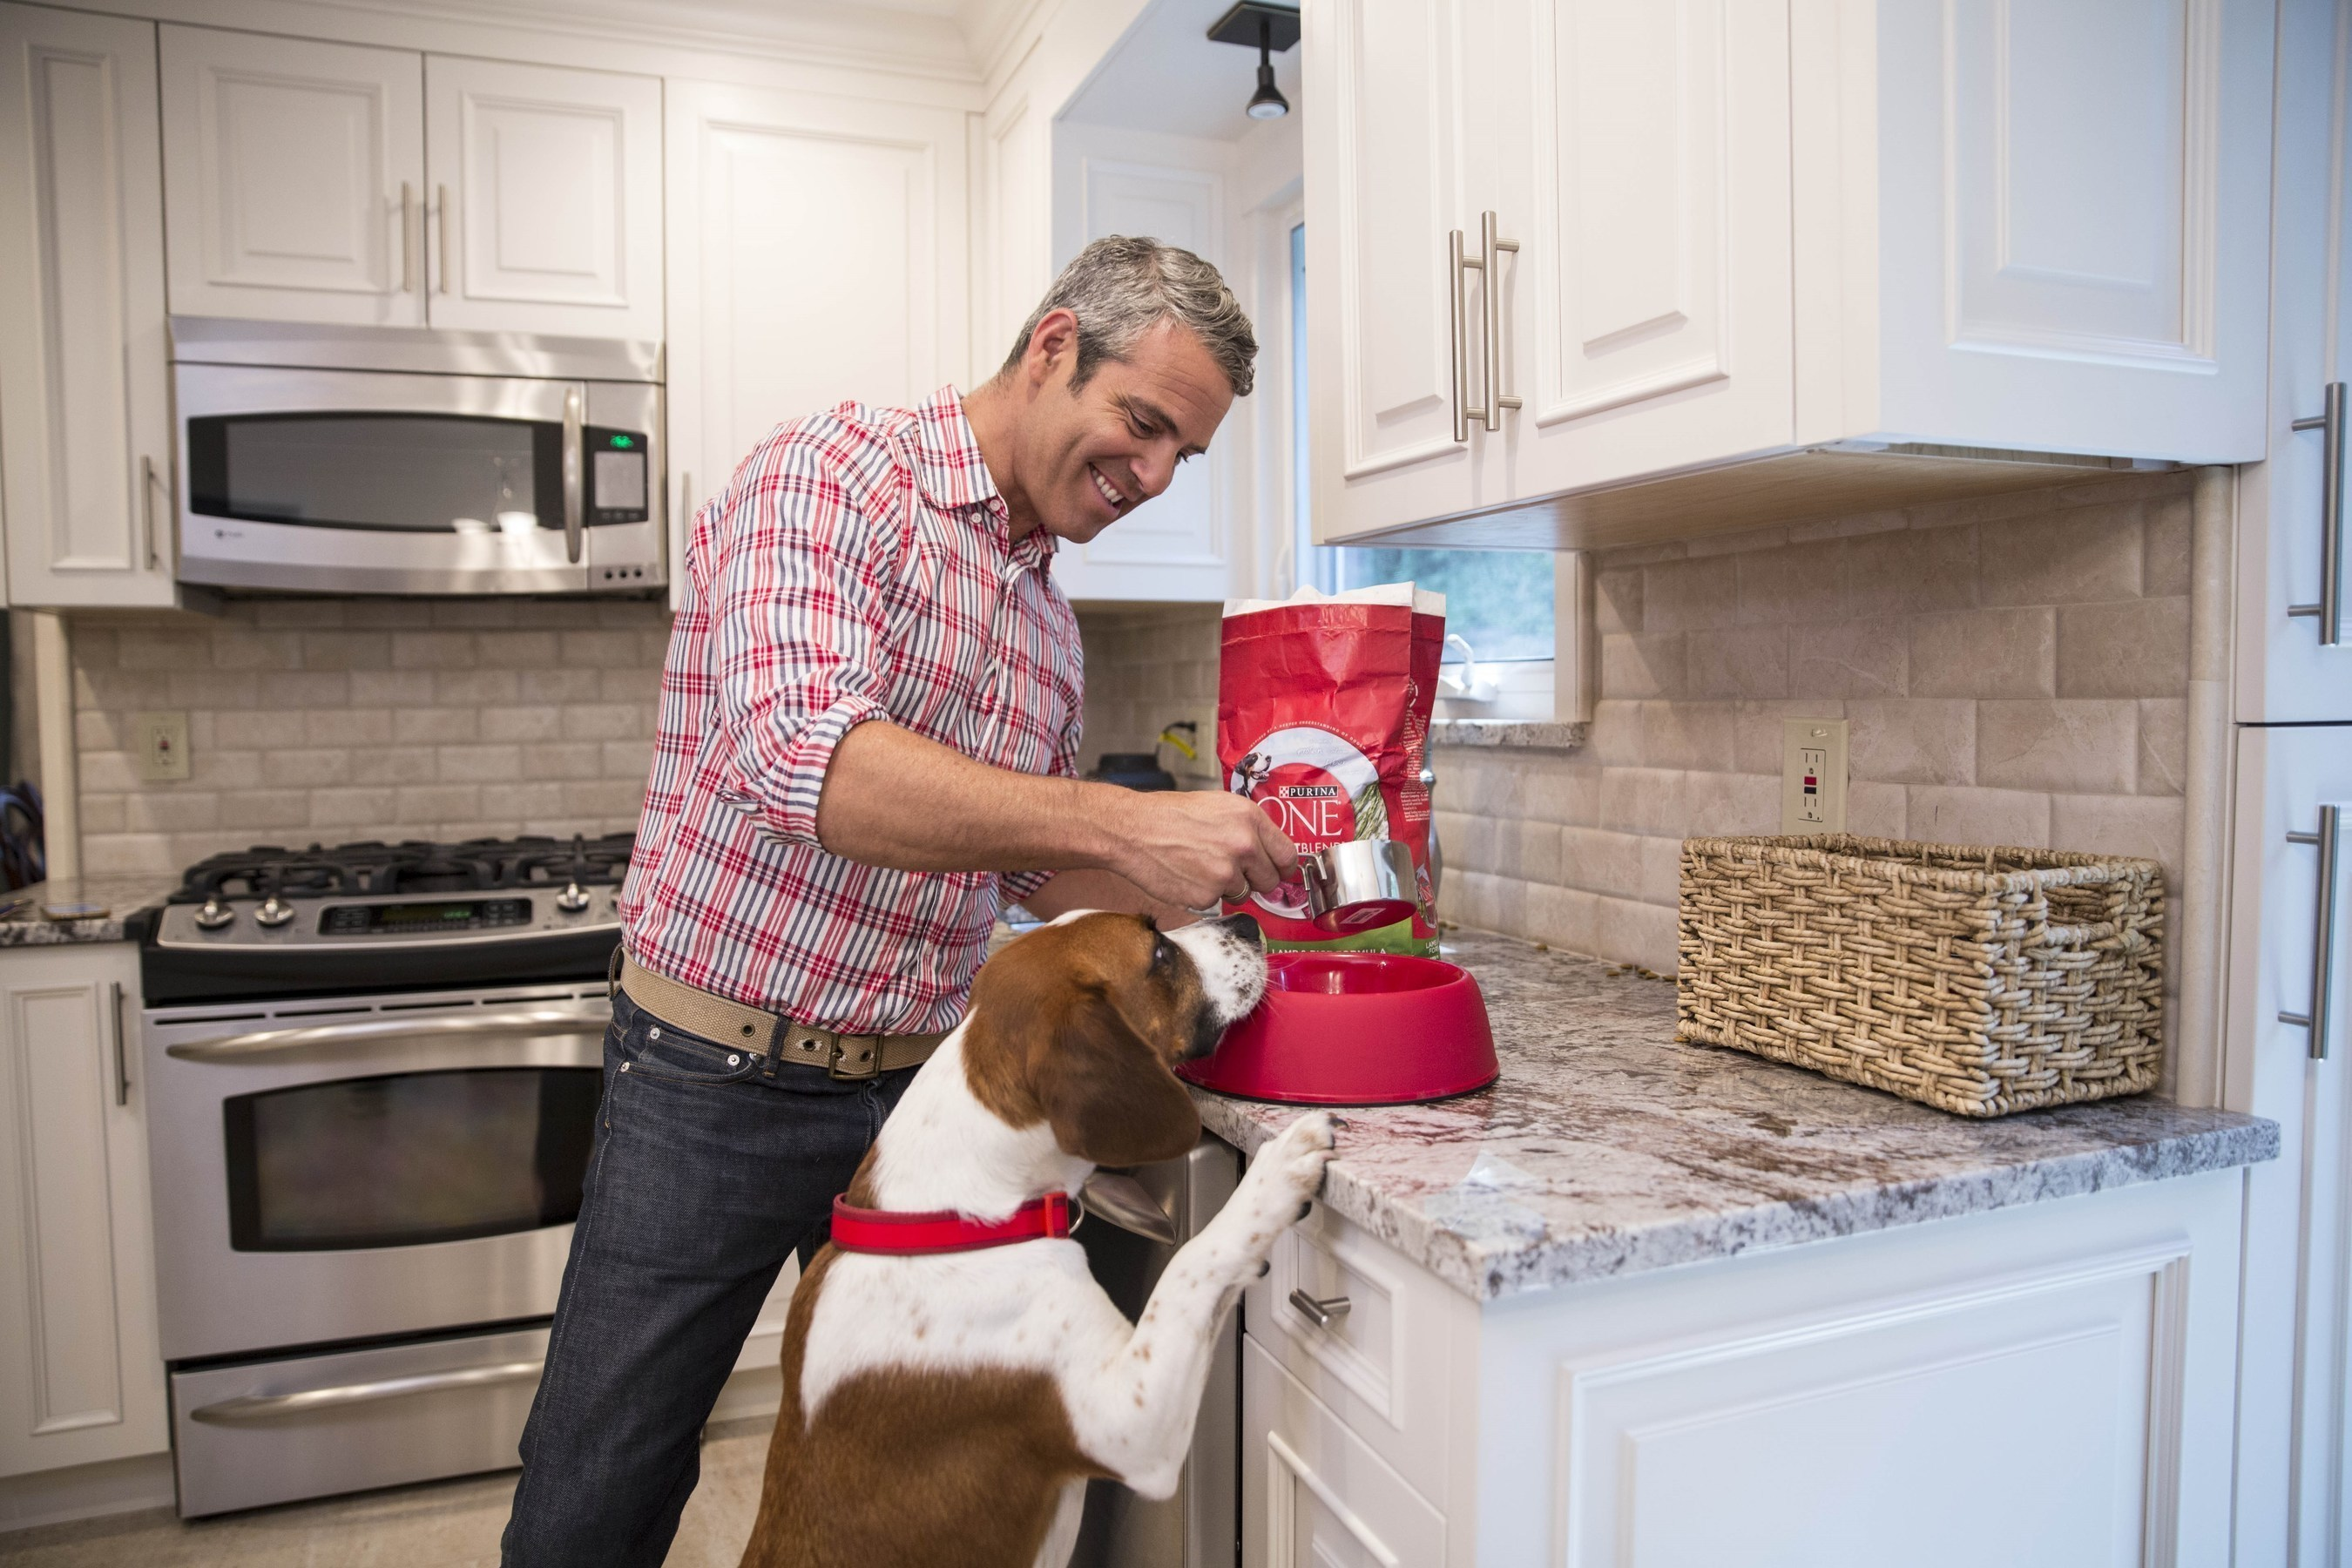 Television host Andy Cohen feeds his rescue dog Wacha Purina ONE dog food as part of Purina ONE's 28 Day Challenge. Andy is teaming up with Purina ONE to support the ONE Difference initiative which celebrates the difference shelter-led educational programs can make in the lives of both students and shelter dogs.